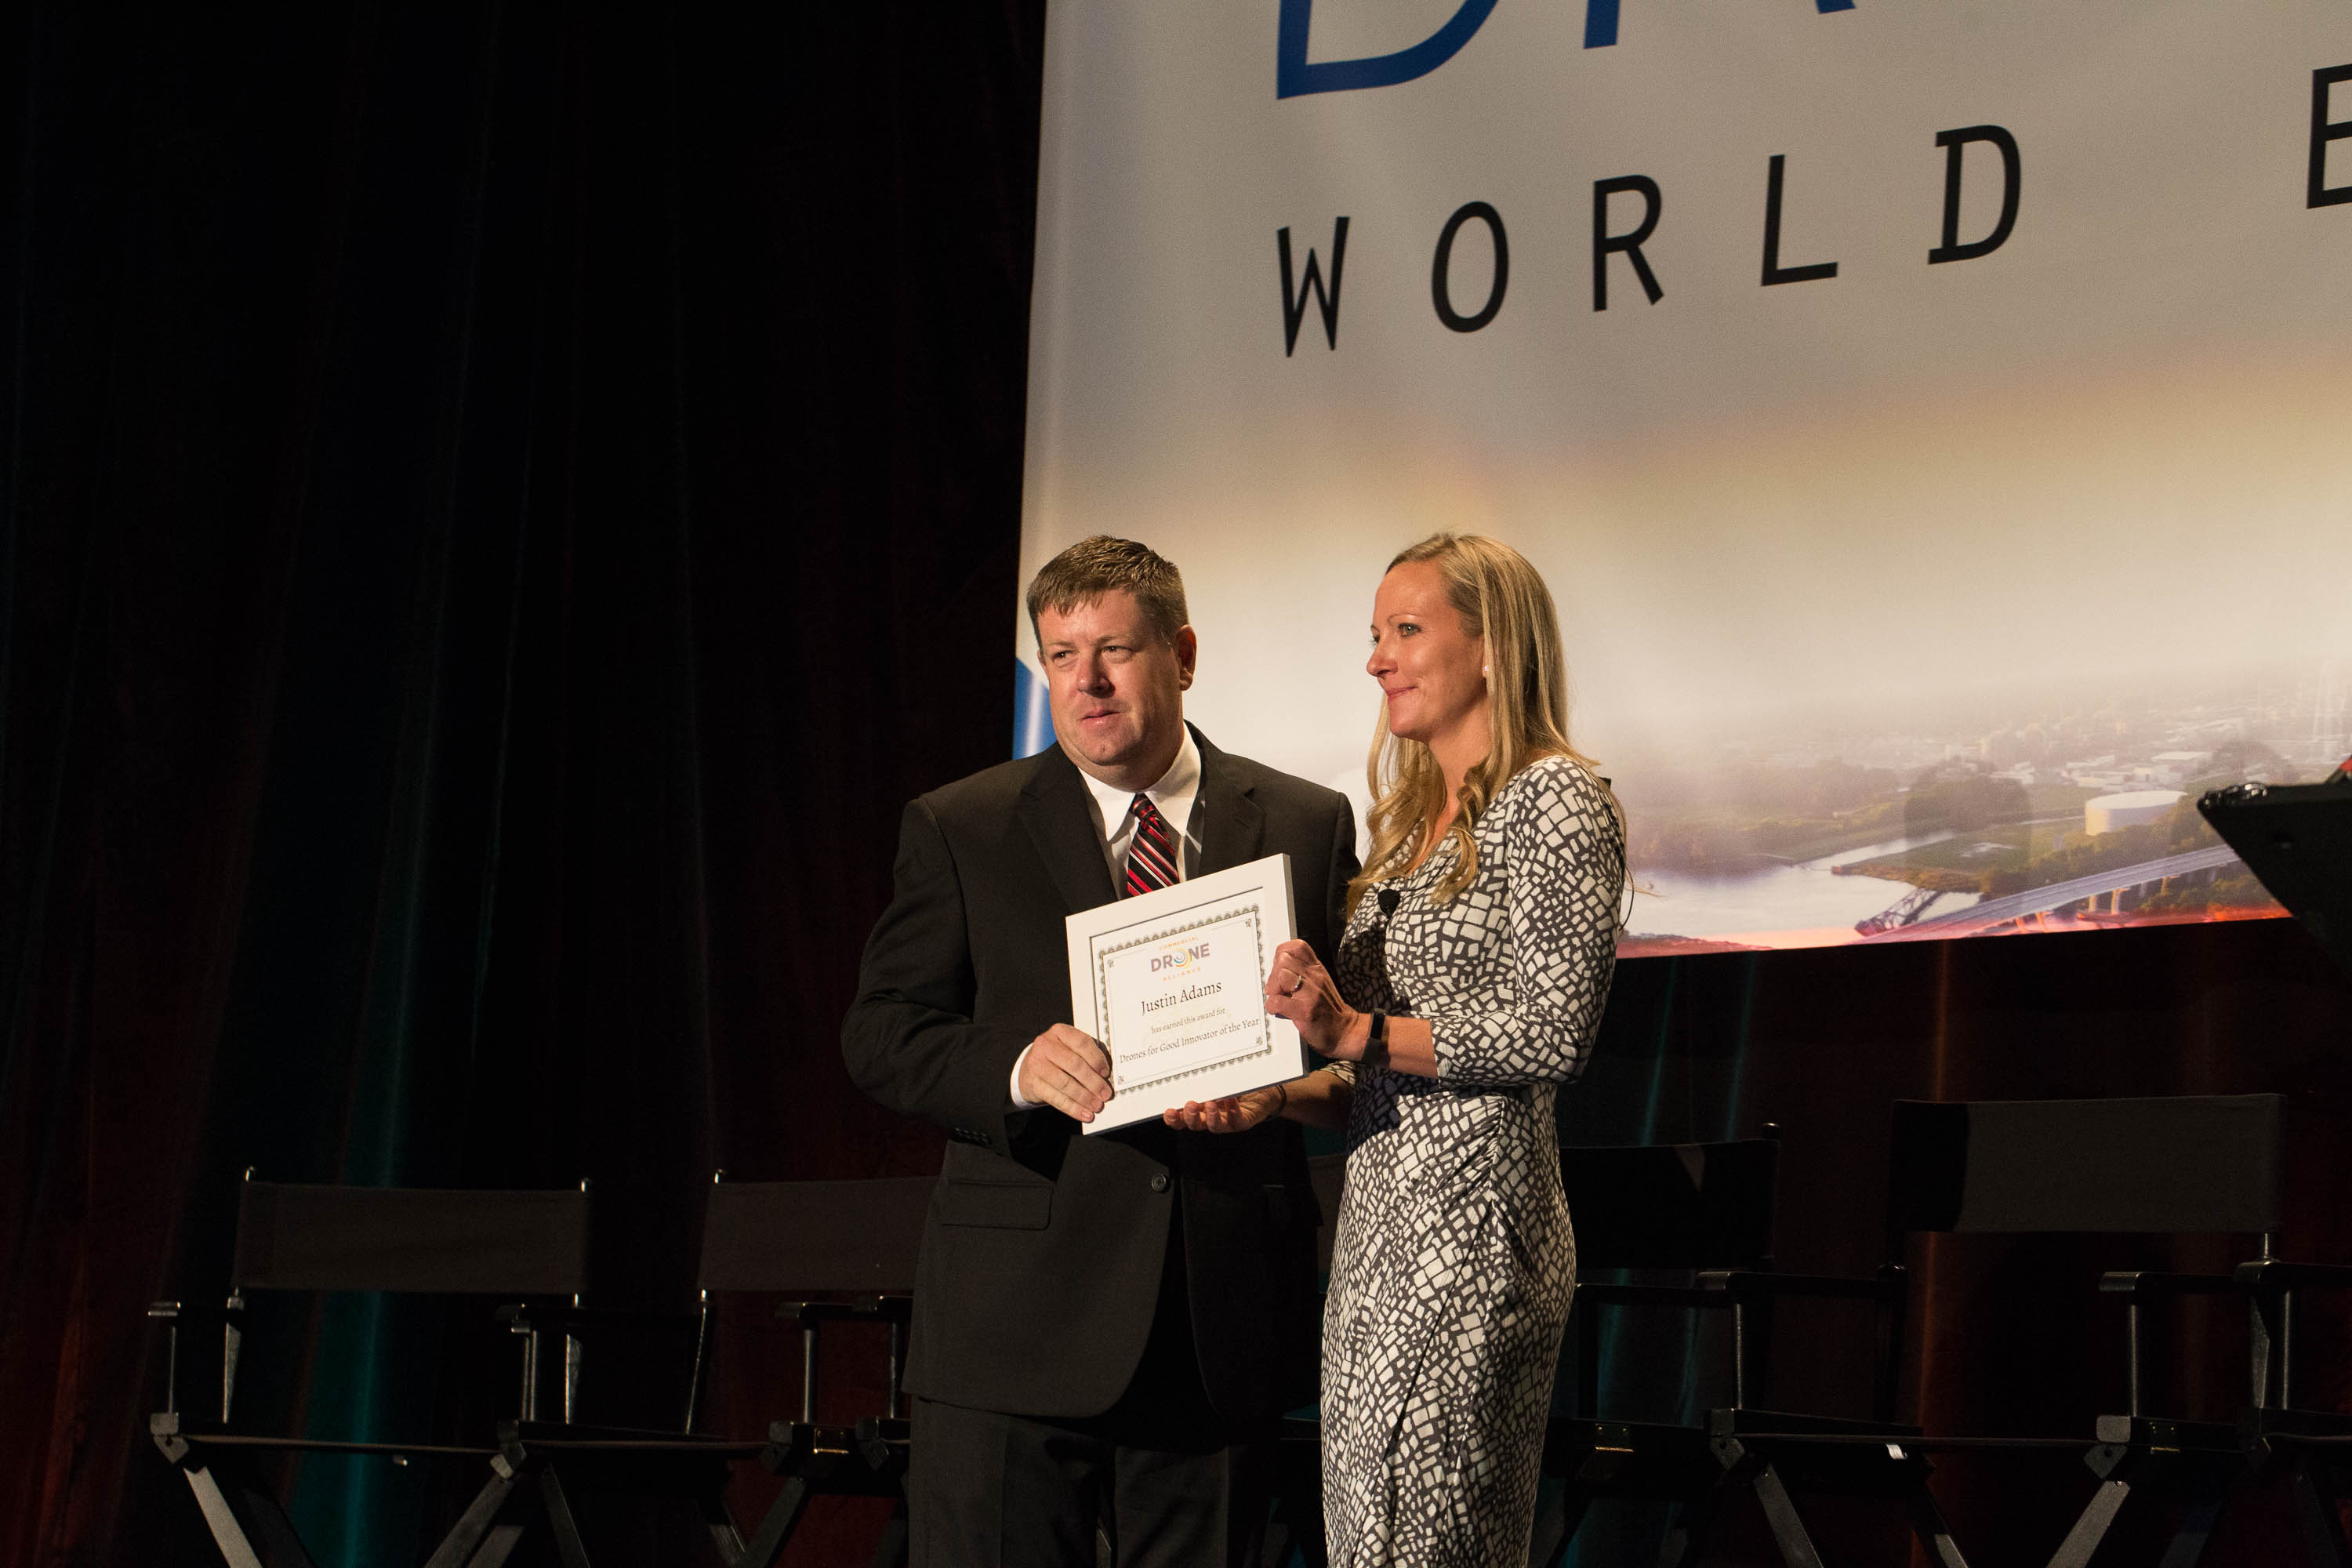 Justin Adams accepts the Drones for Good Innovator of the Year award from the Commercial Drone Alliance at Drone World Expo in San Jose, California, Oct. 4. He headed straight to Puerto Rico after the conference to fly damage surveys following Hurricane Maria. Jim Moore photo.